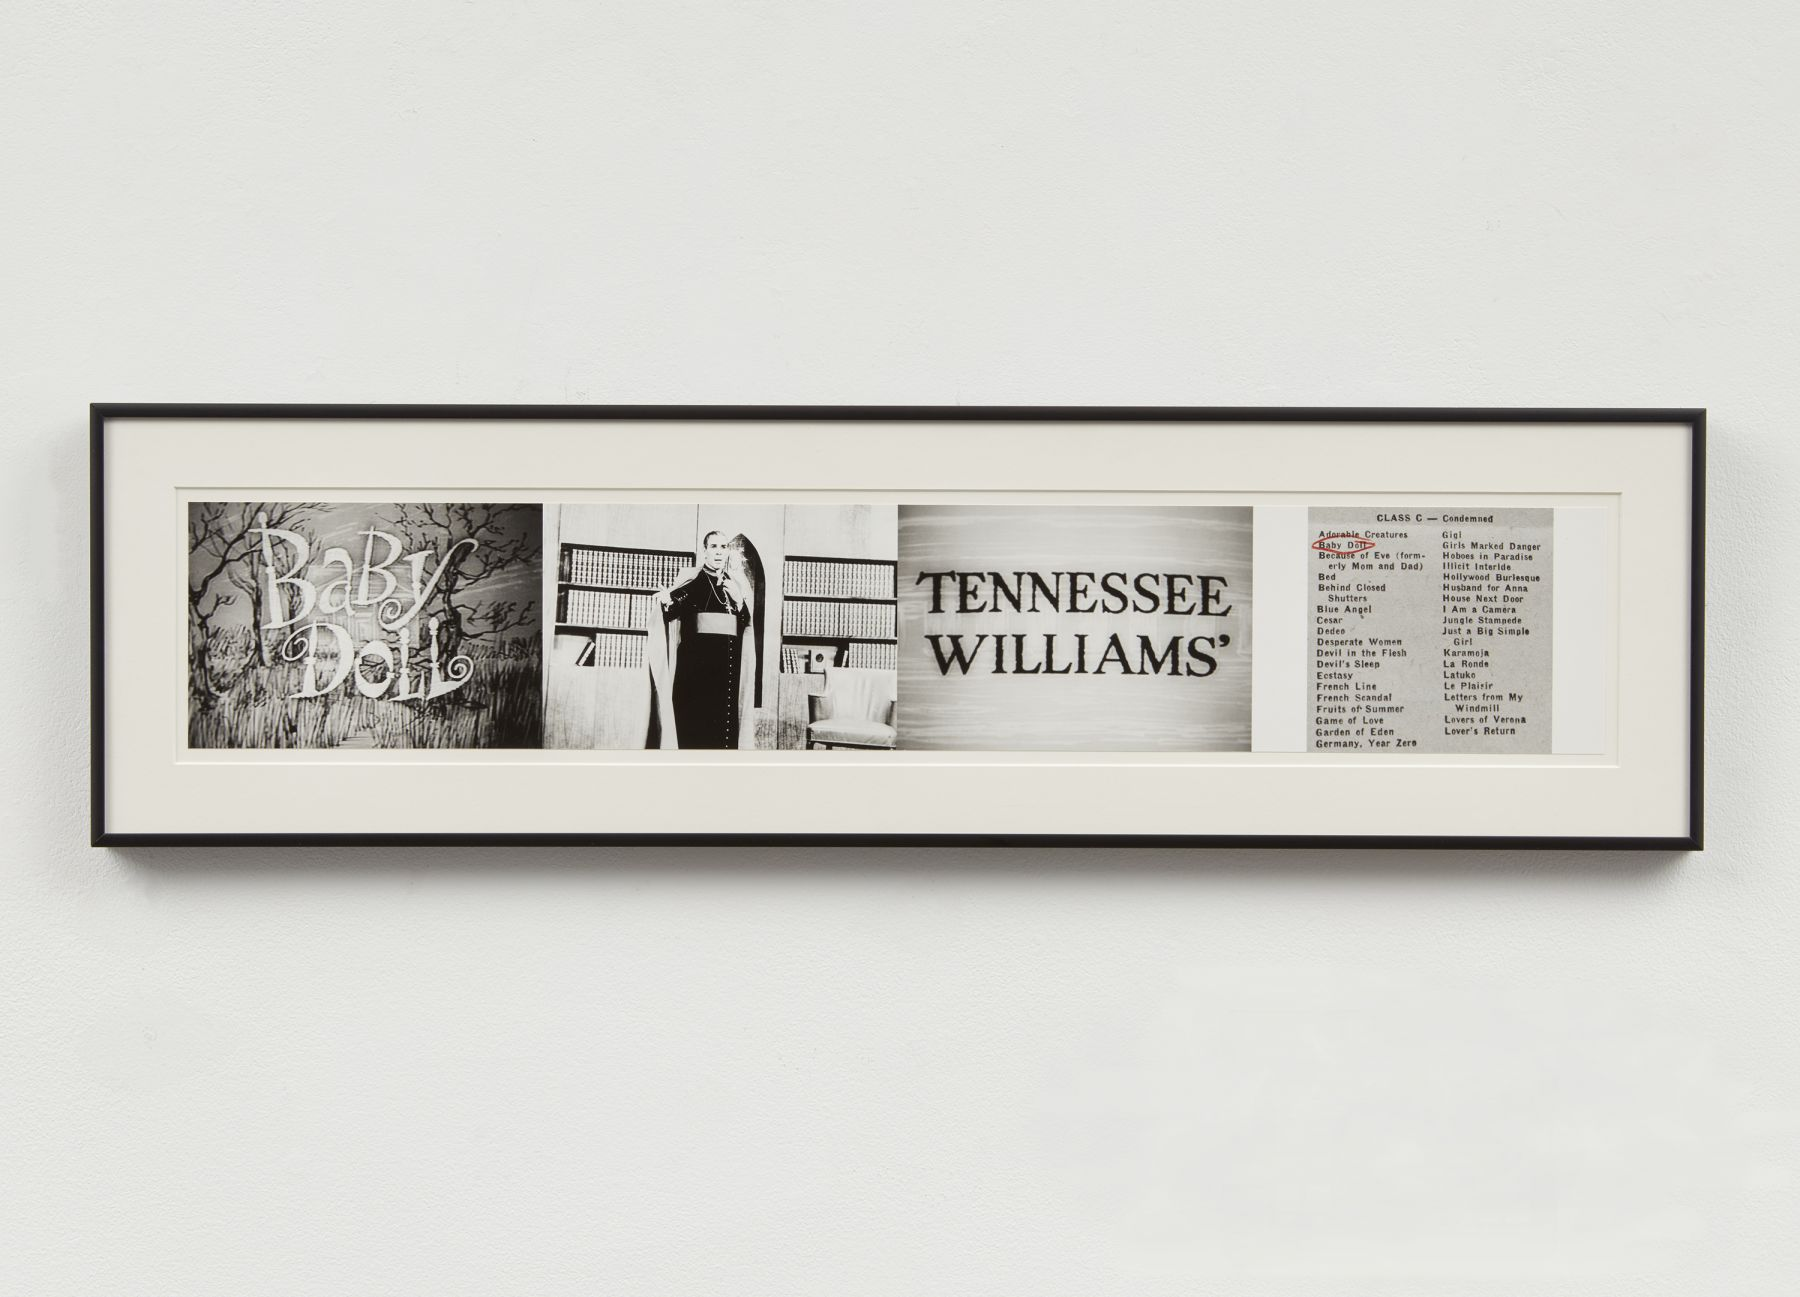 prints by John Waters - the baltimore based artist and film maker